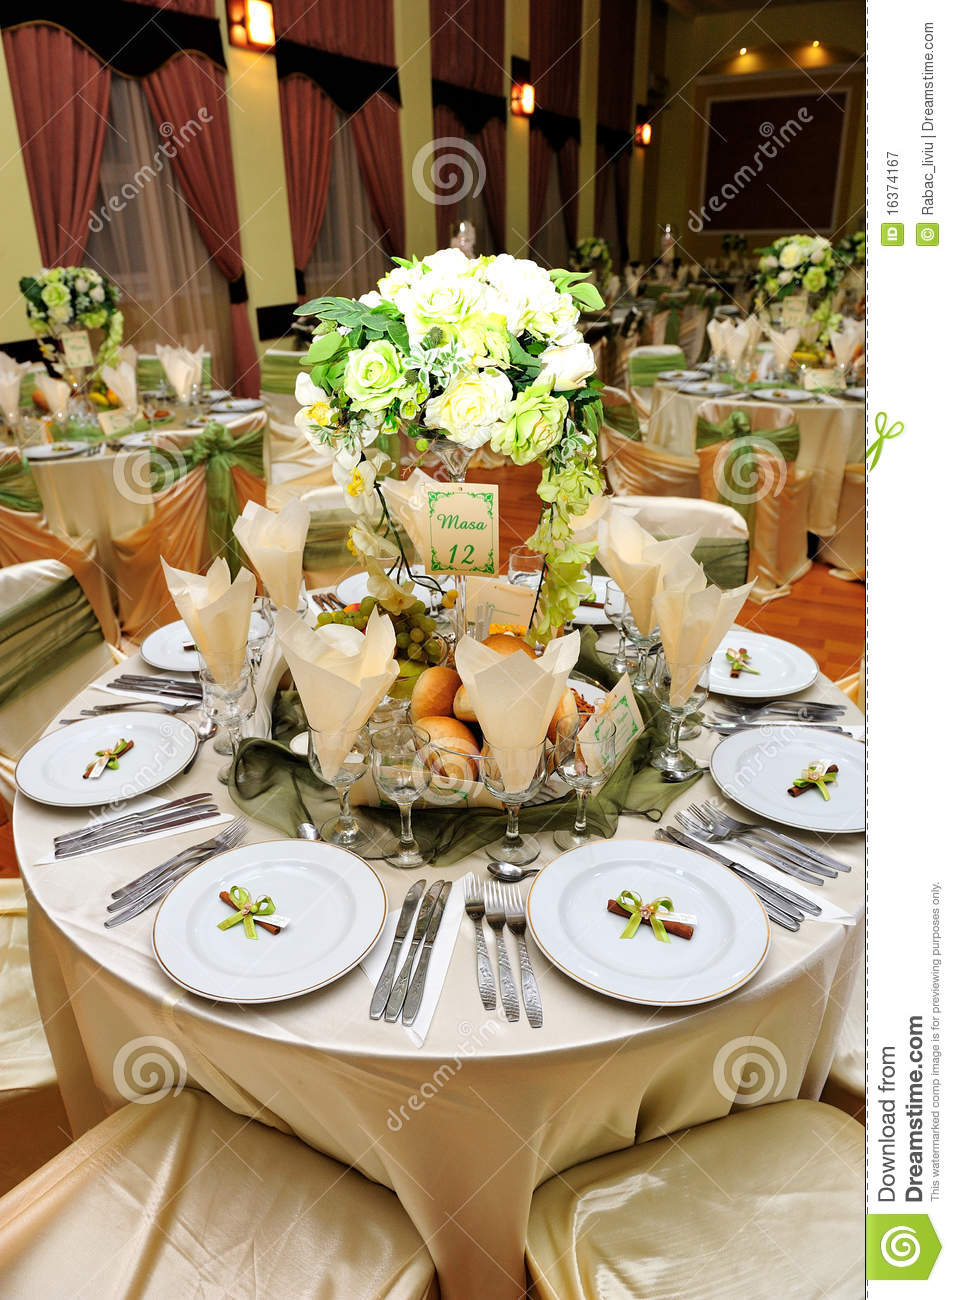 Table Setting Wedding Stock Image Image Of Meal Fine